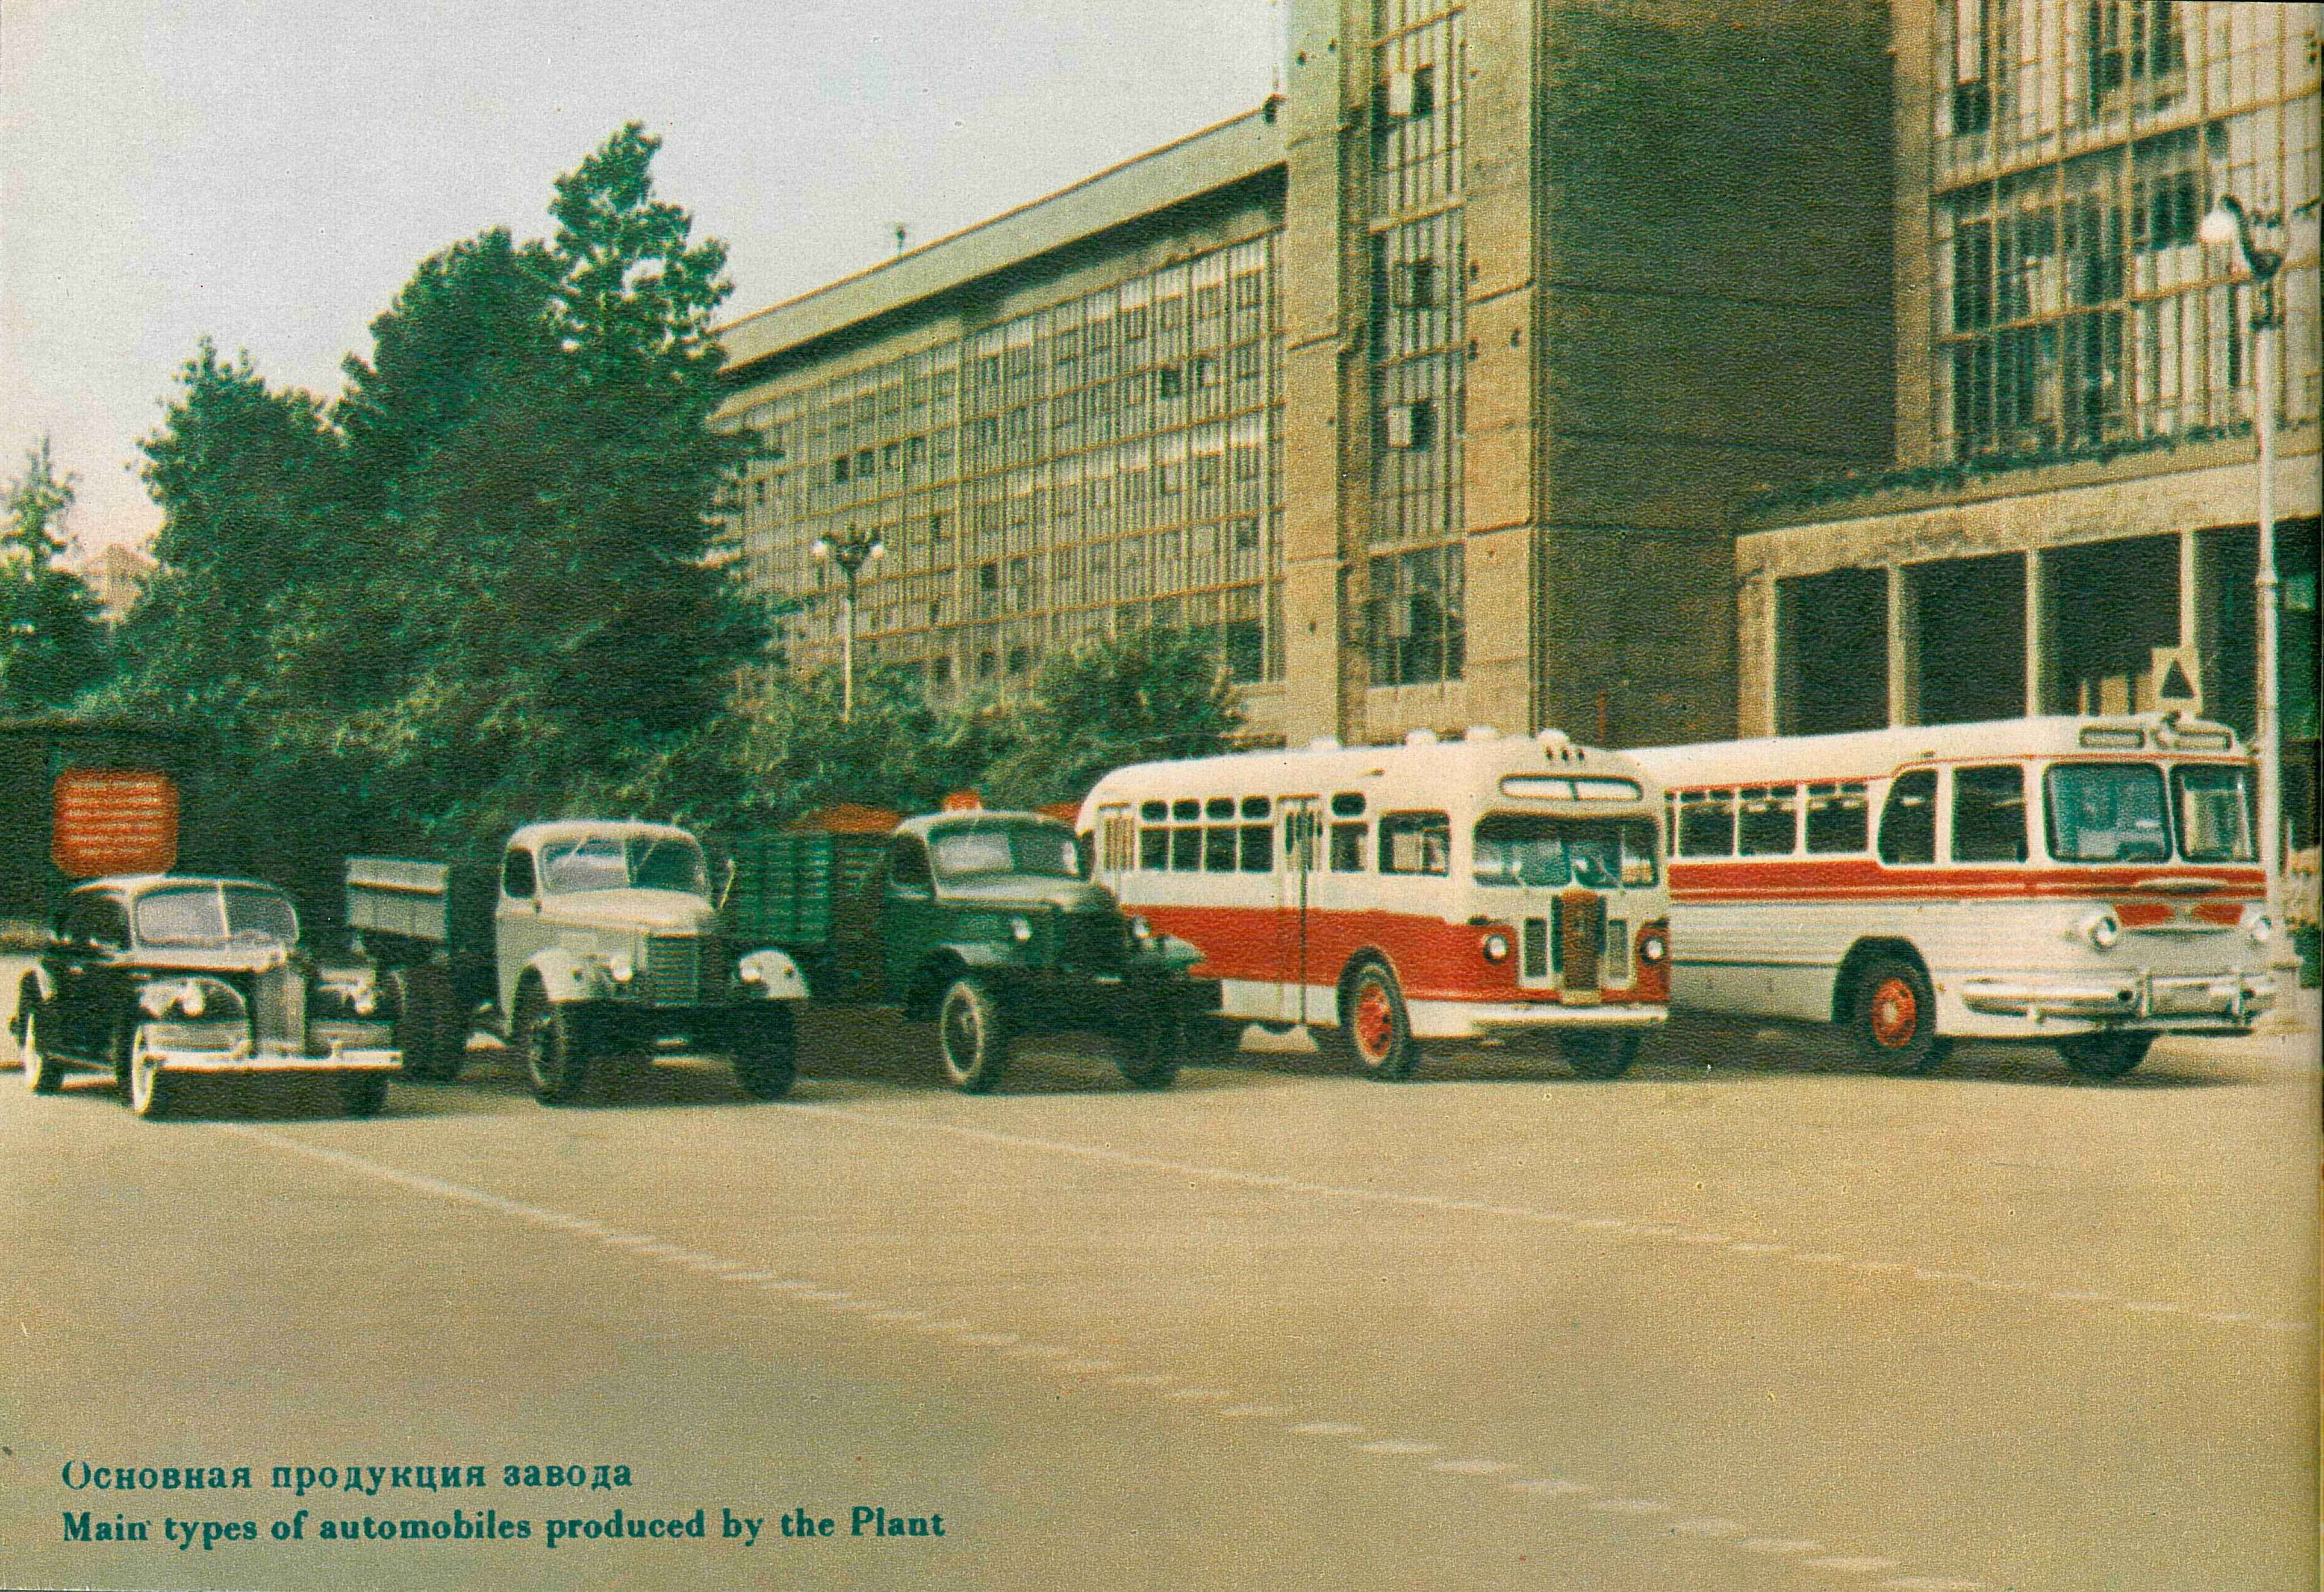 In addition to cars, the plant also made trucks, buses, bicycles and even refrigerators. (Circa 1956-1959)